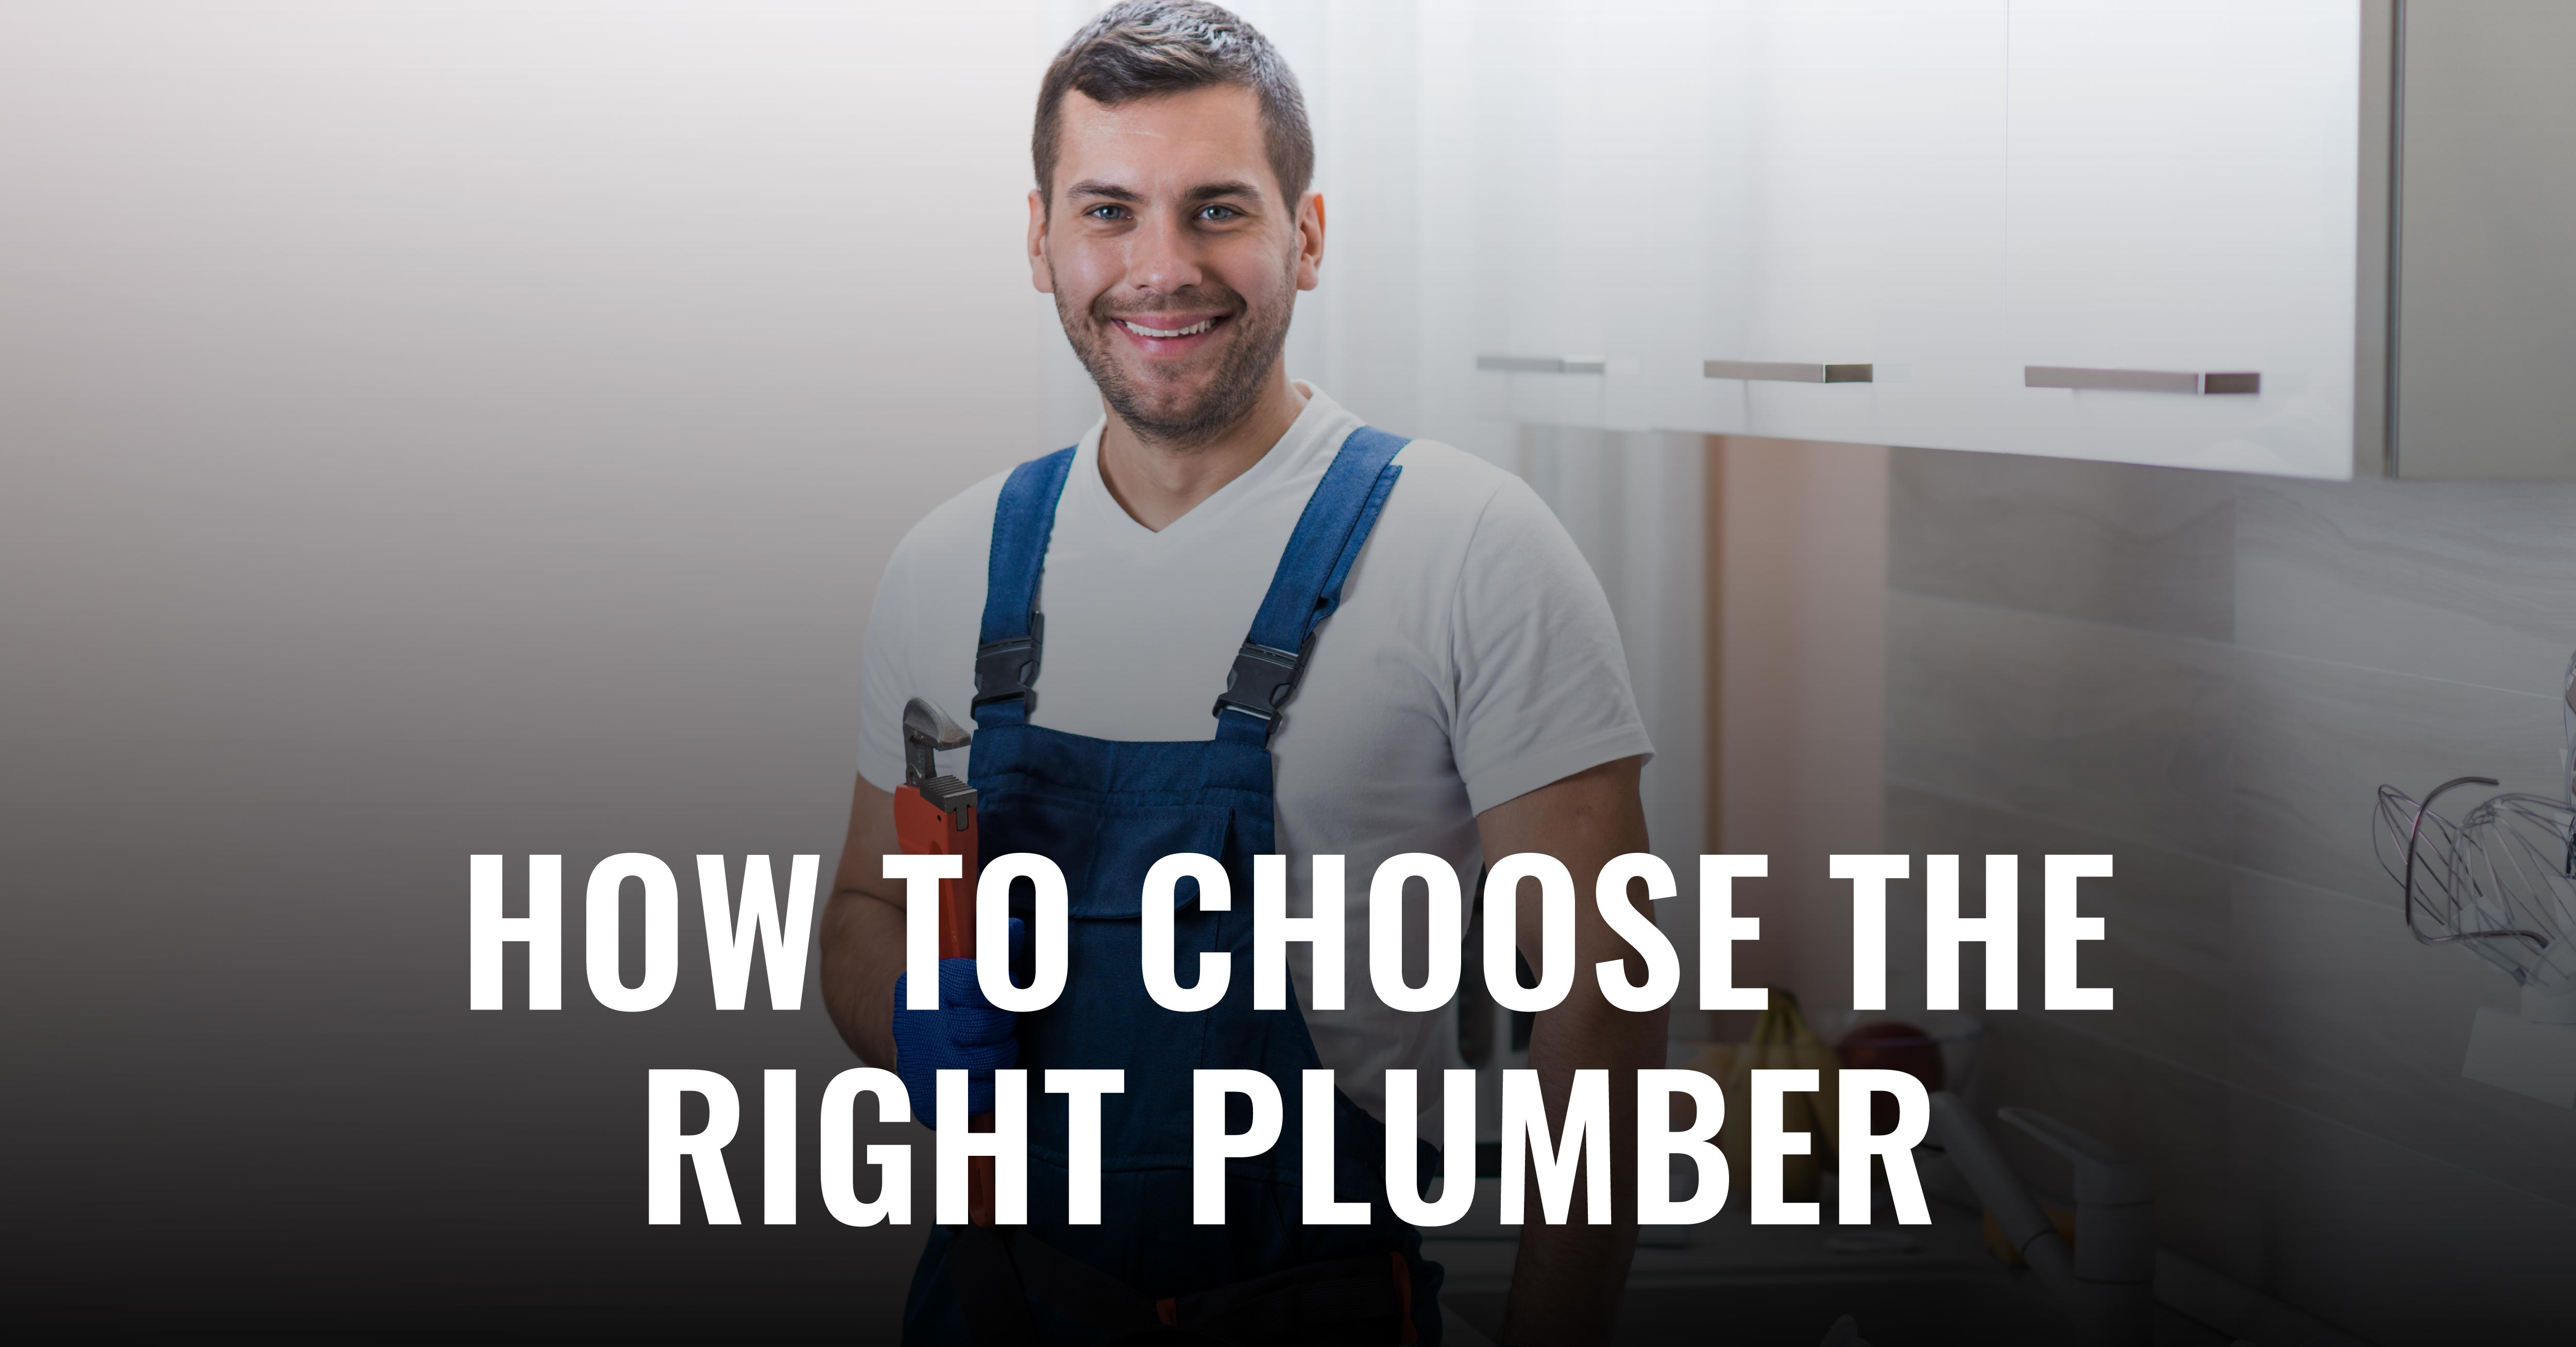 Read today's blog post for a quick guide on how and where to find the right plumber!